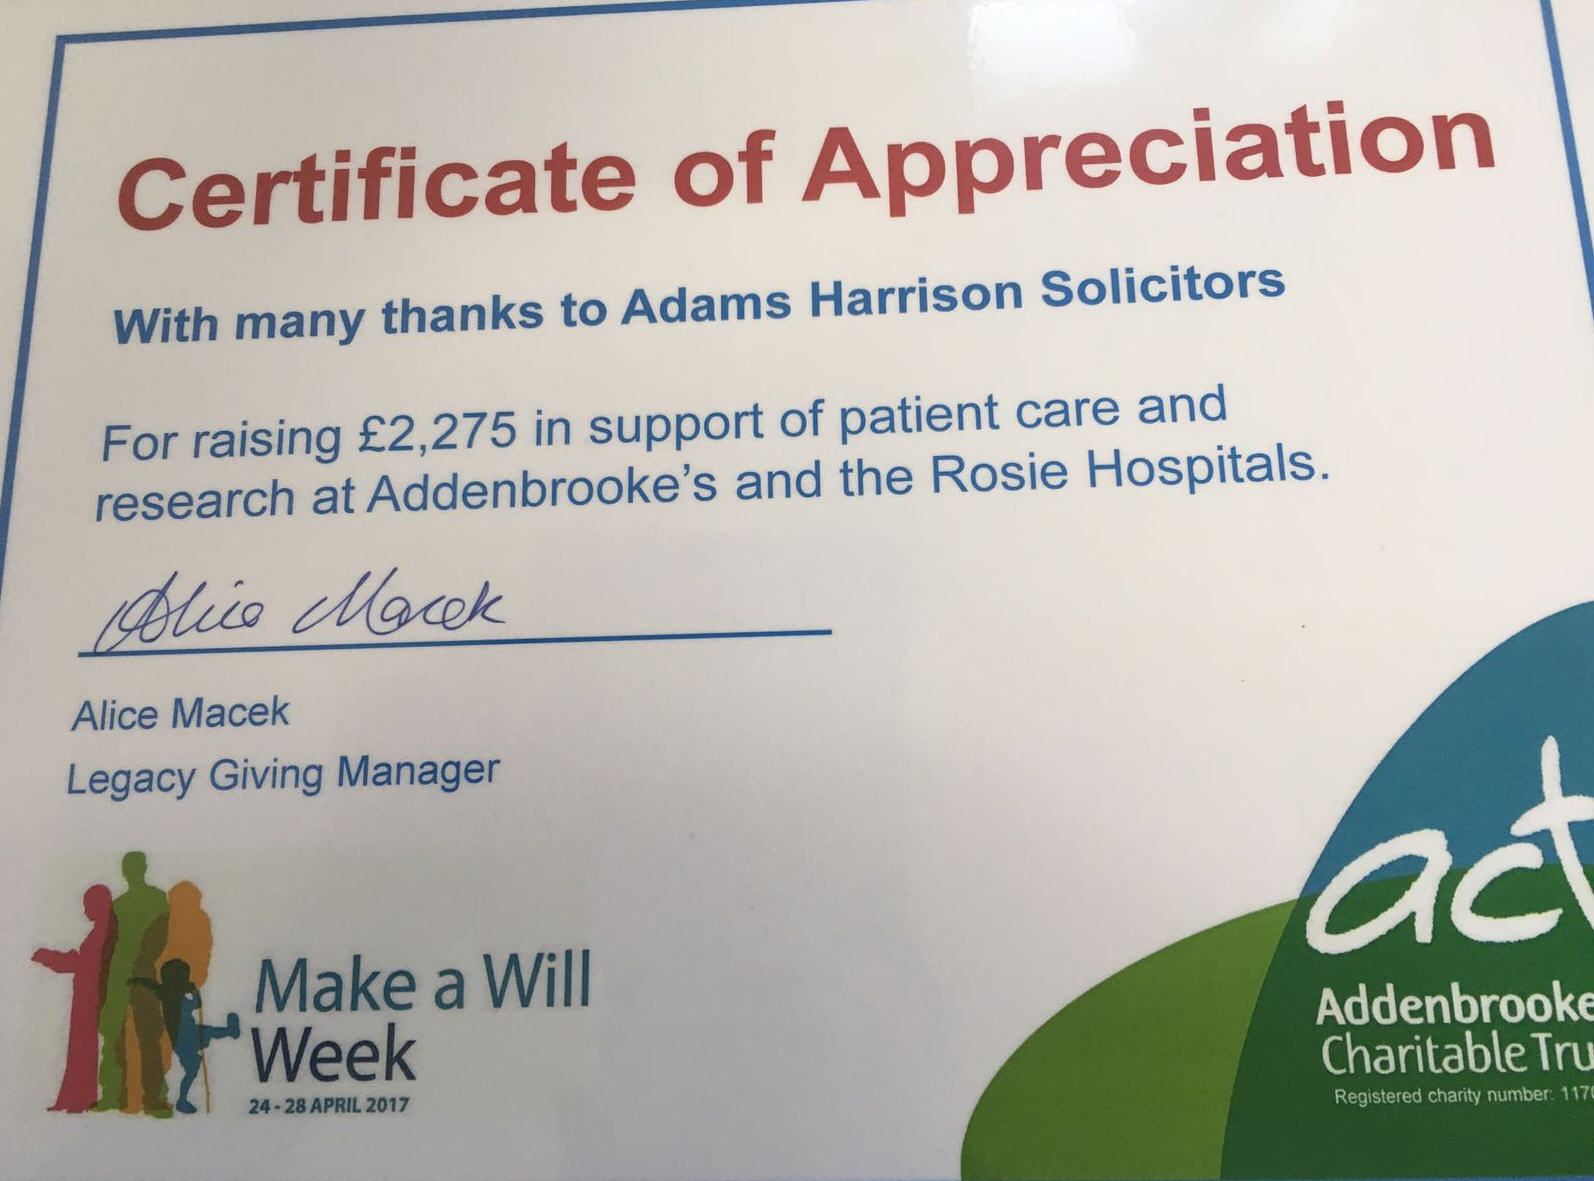 Certificate Of Appreciation For Adams Harrison from Addenbrookes